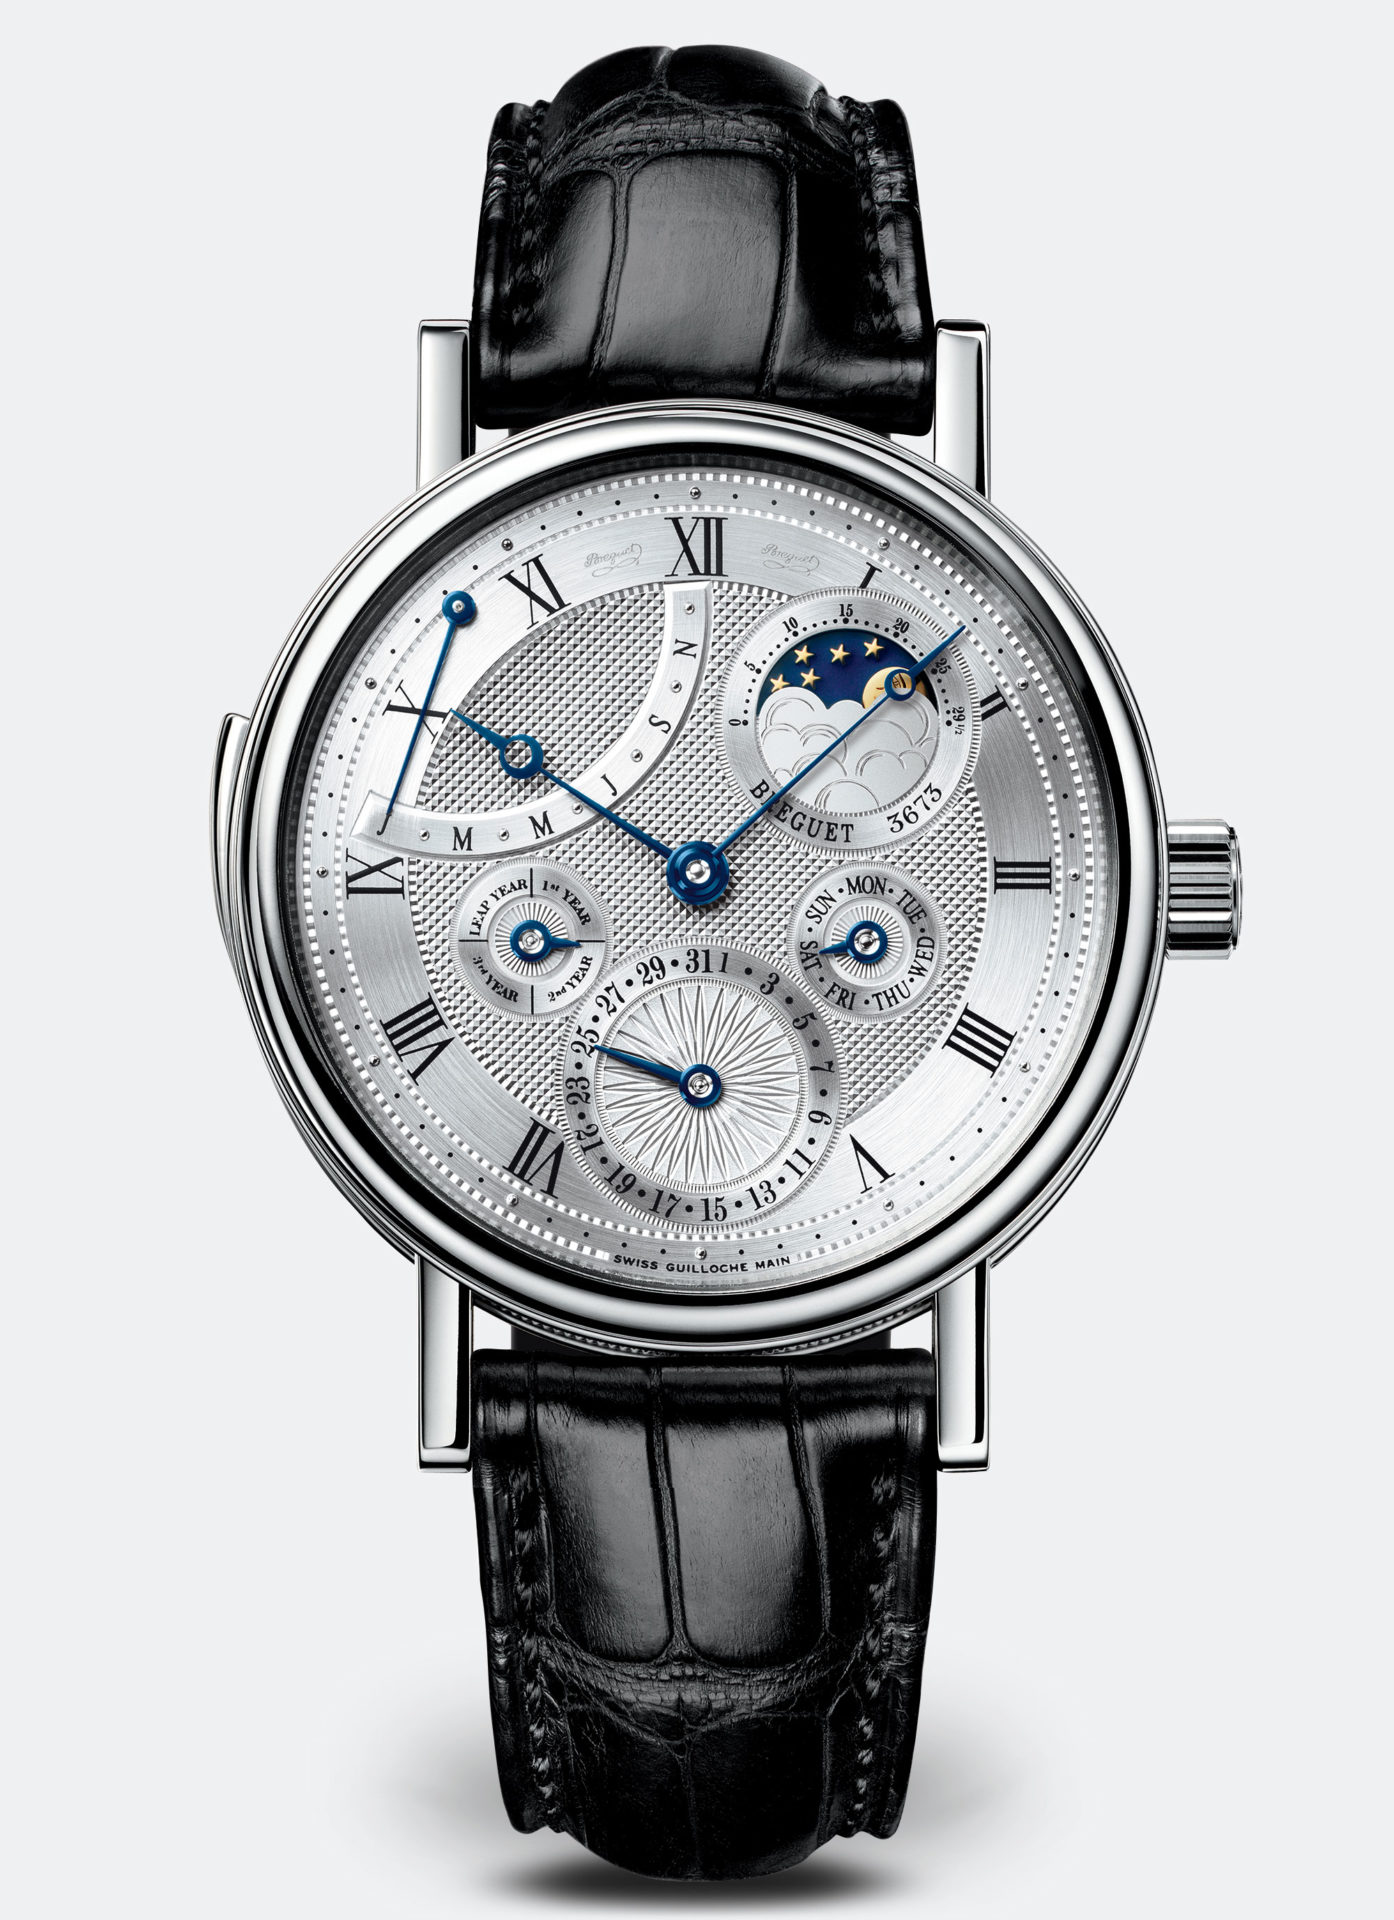 Breguet-Classique-Complications-5447-Hall-of-Time-5447bb-1e-9v6